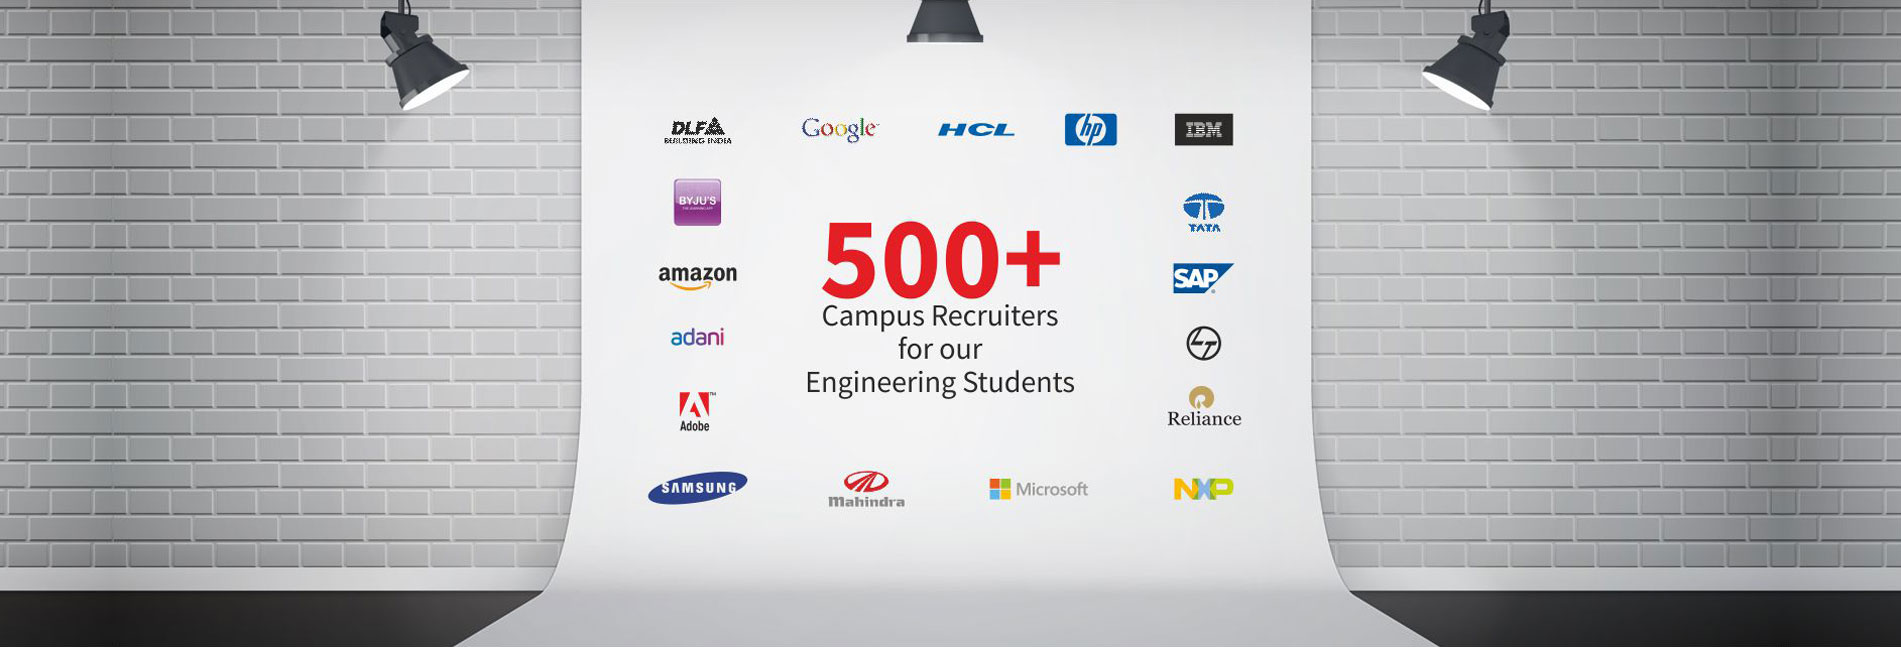 500+ campus recruiters for our engineering students